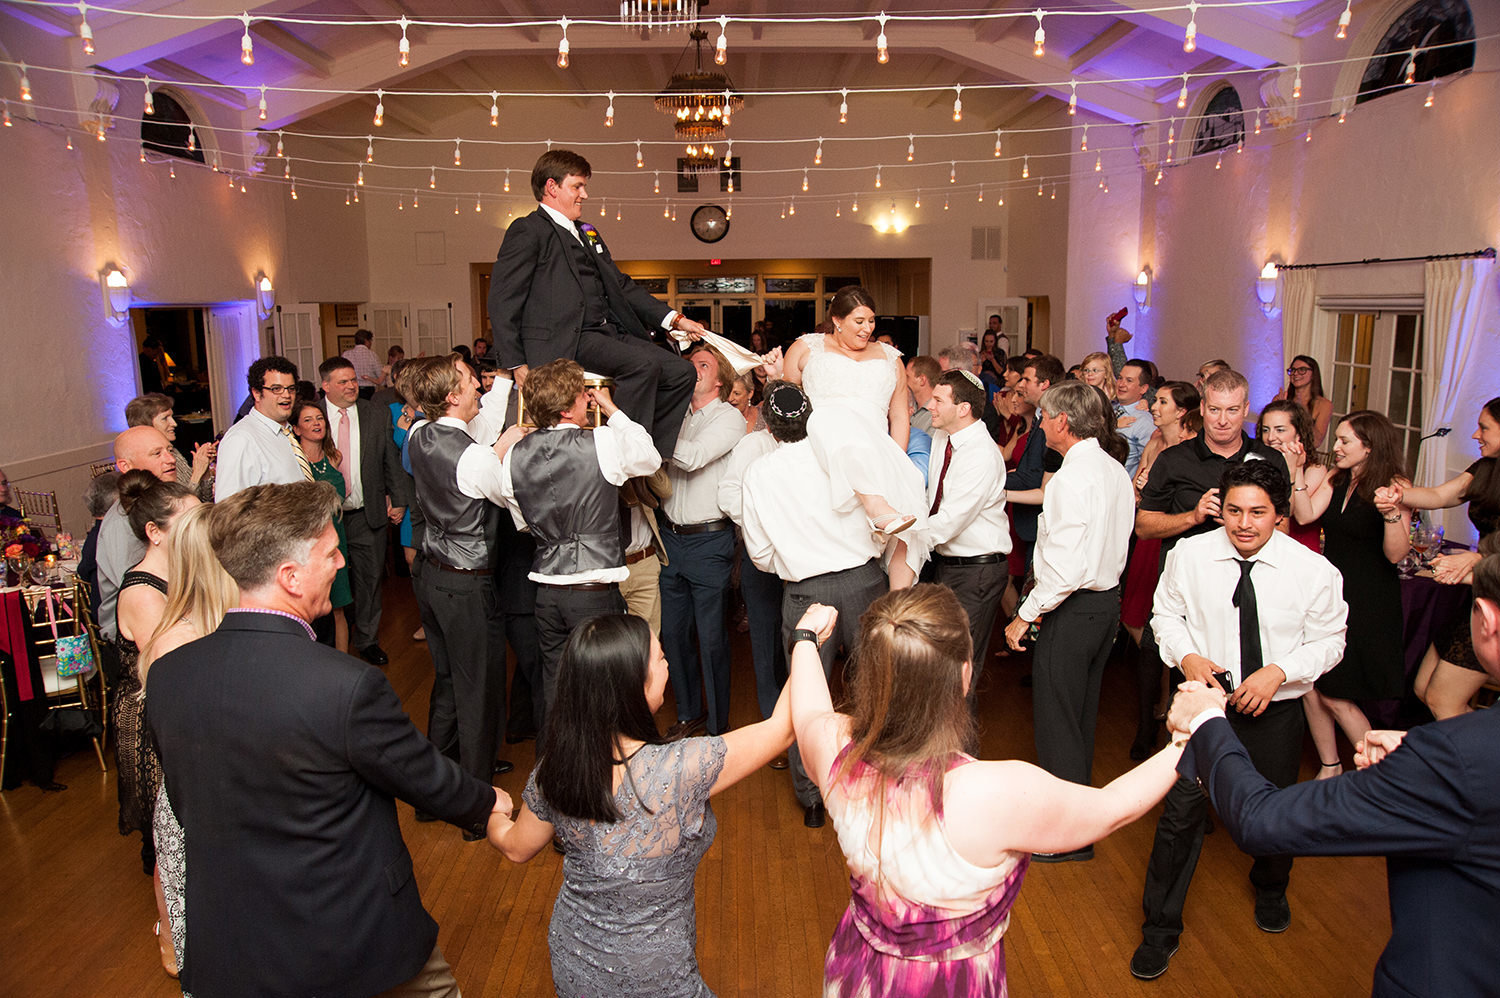 bride and groom on chairs dancing